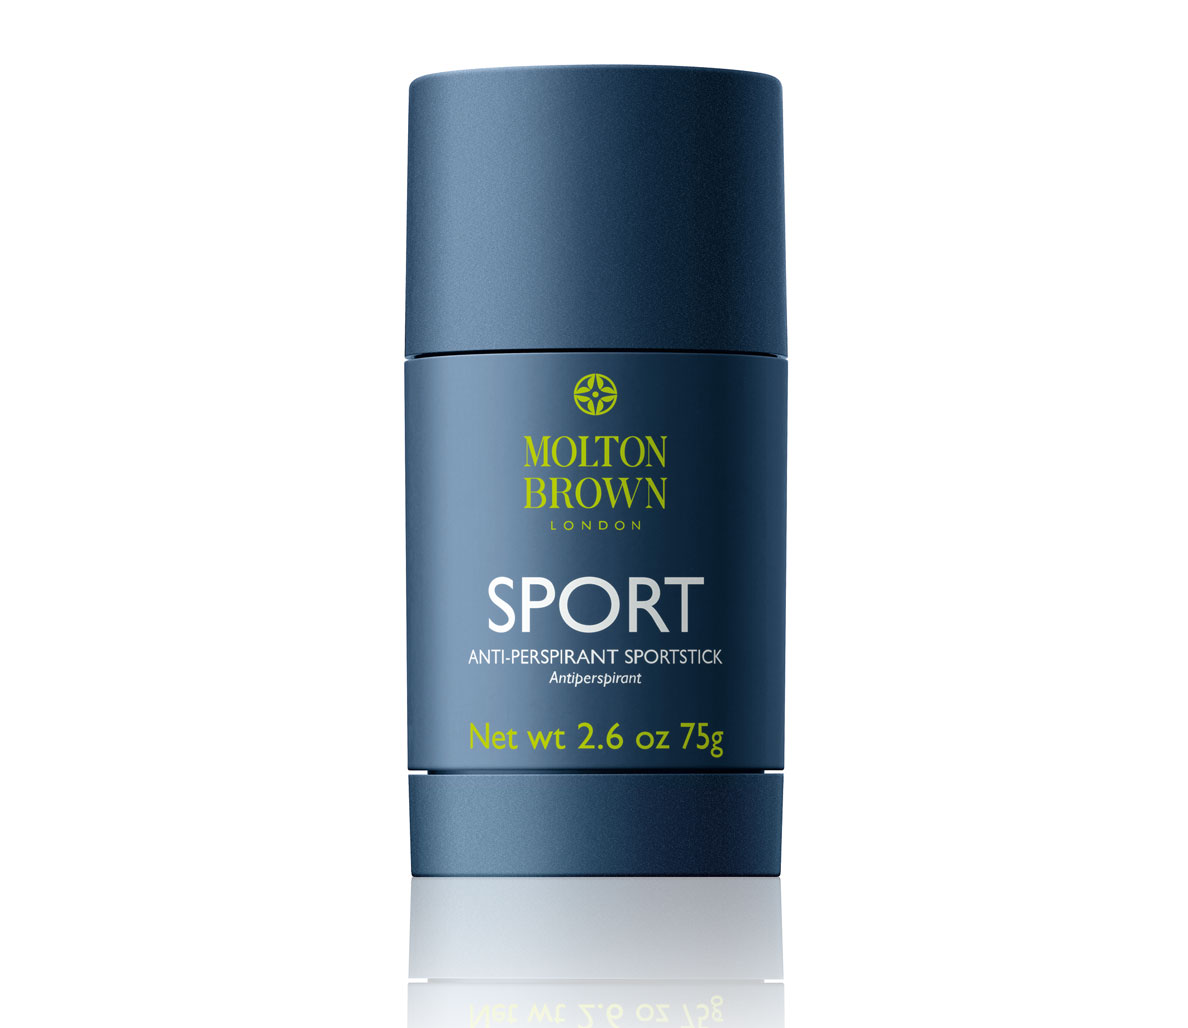 Stay Dry And Fresh All Day The 15 Best Deodorants For Men